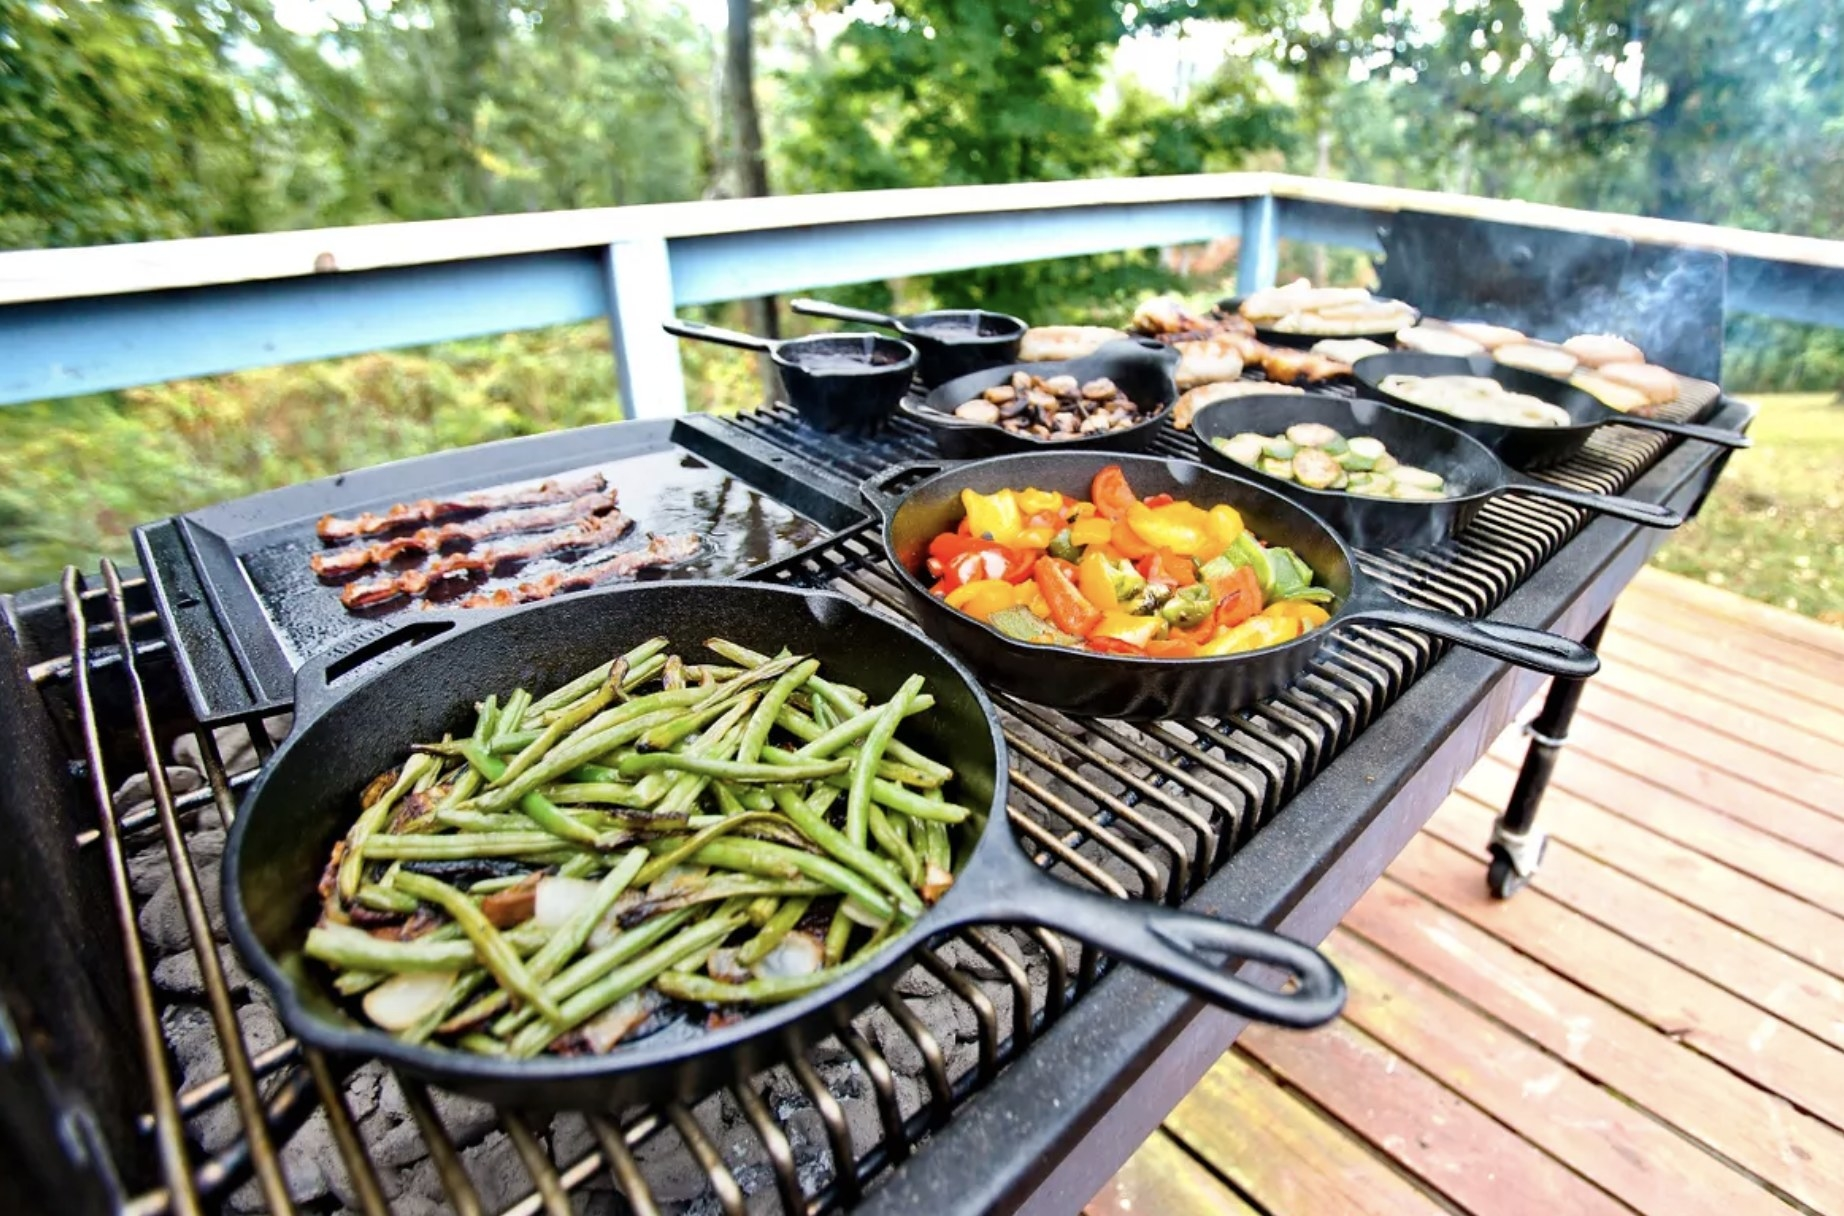 four cast iron skillets on a grill cooking vegetables